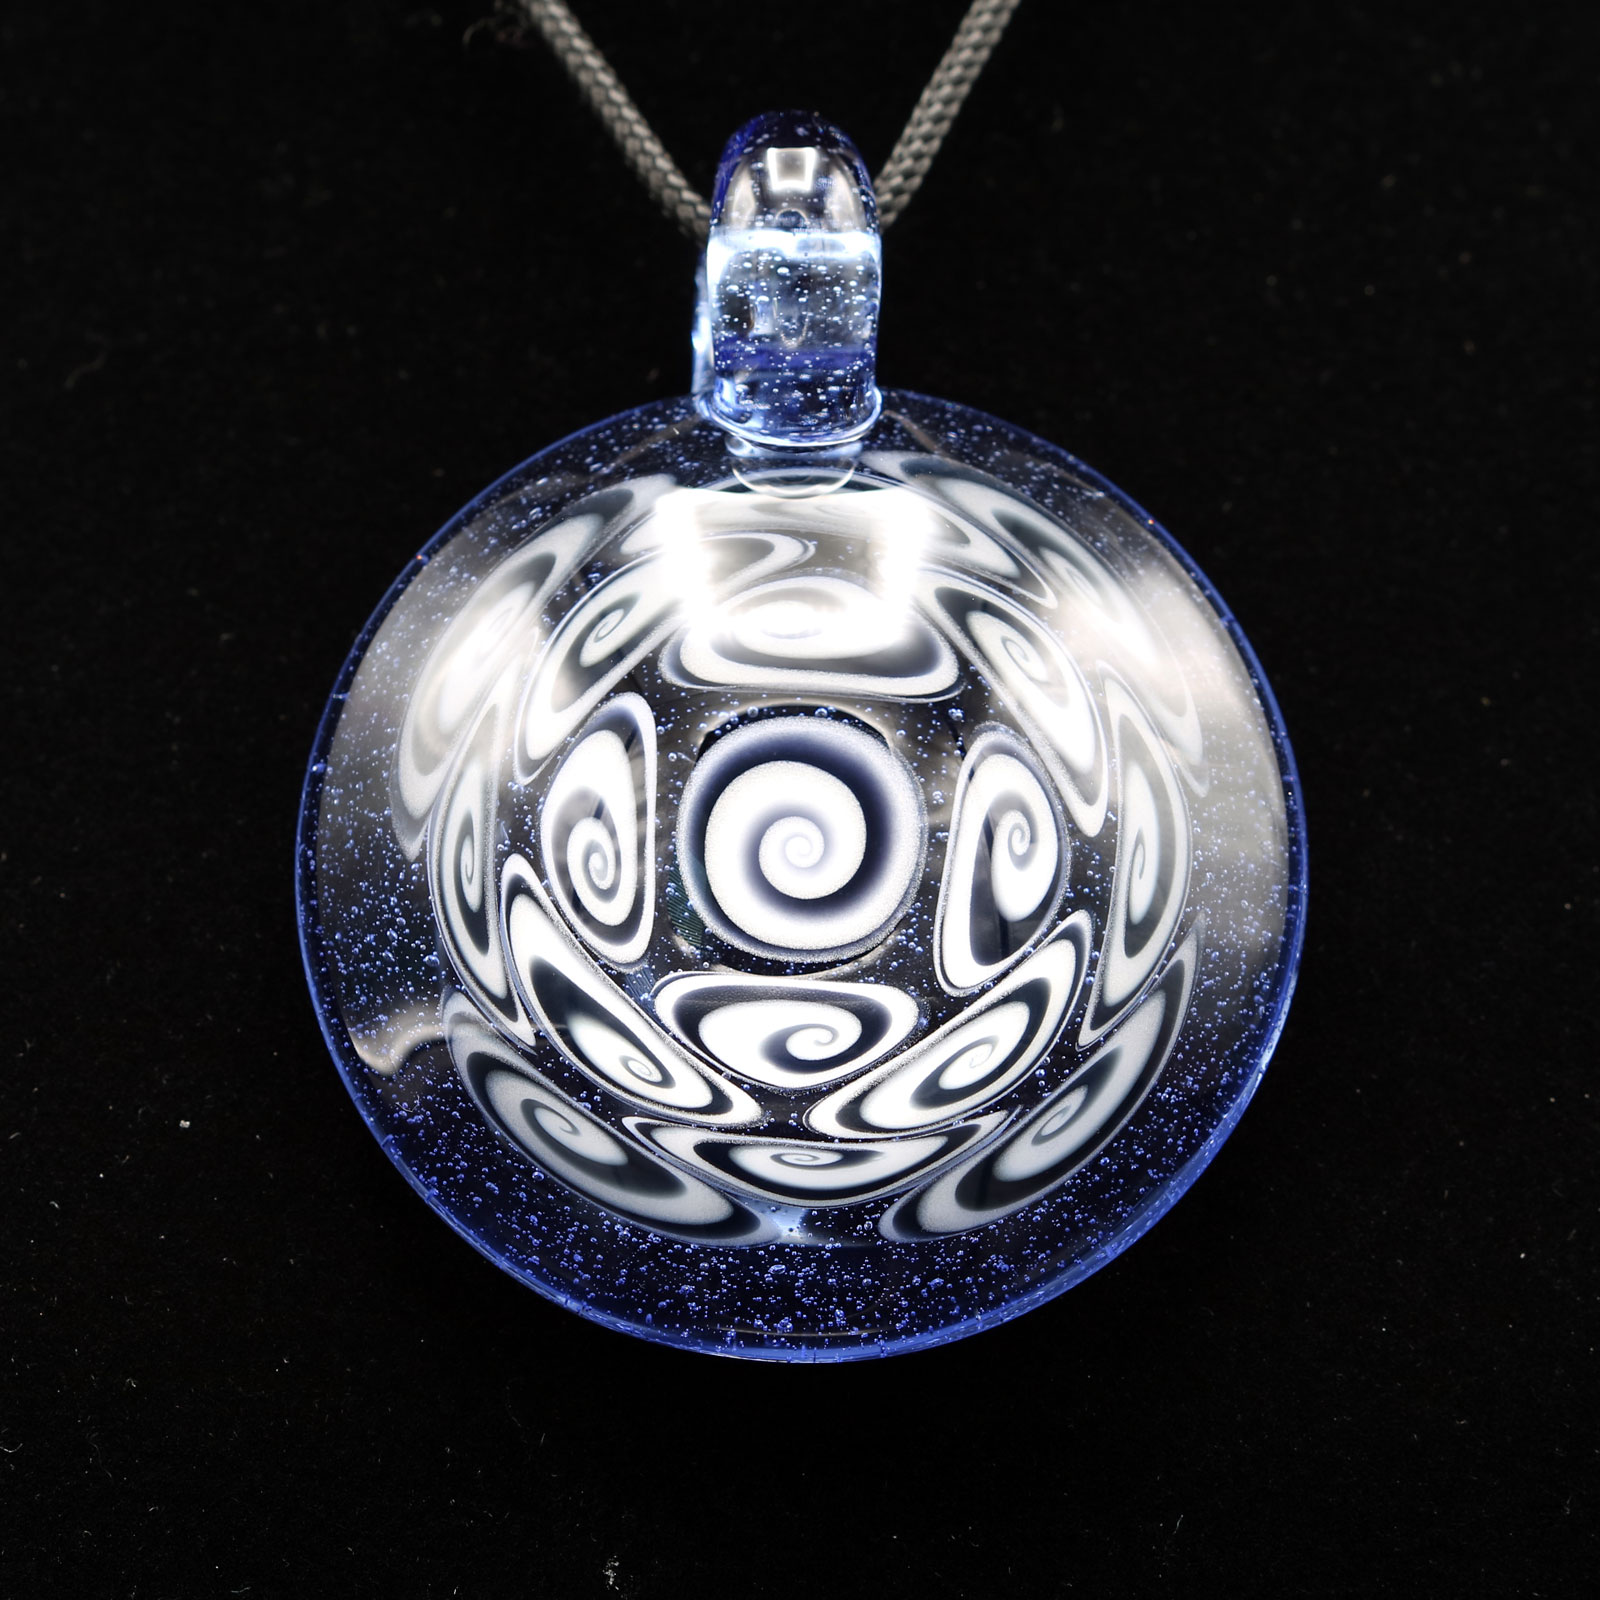 Kaja Glass – 17 Section XXL Bluemingo Microspiral Glass Pendant